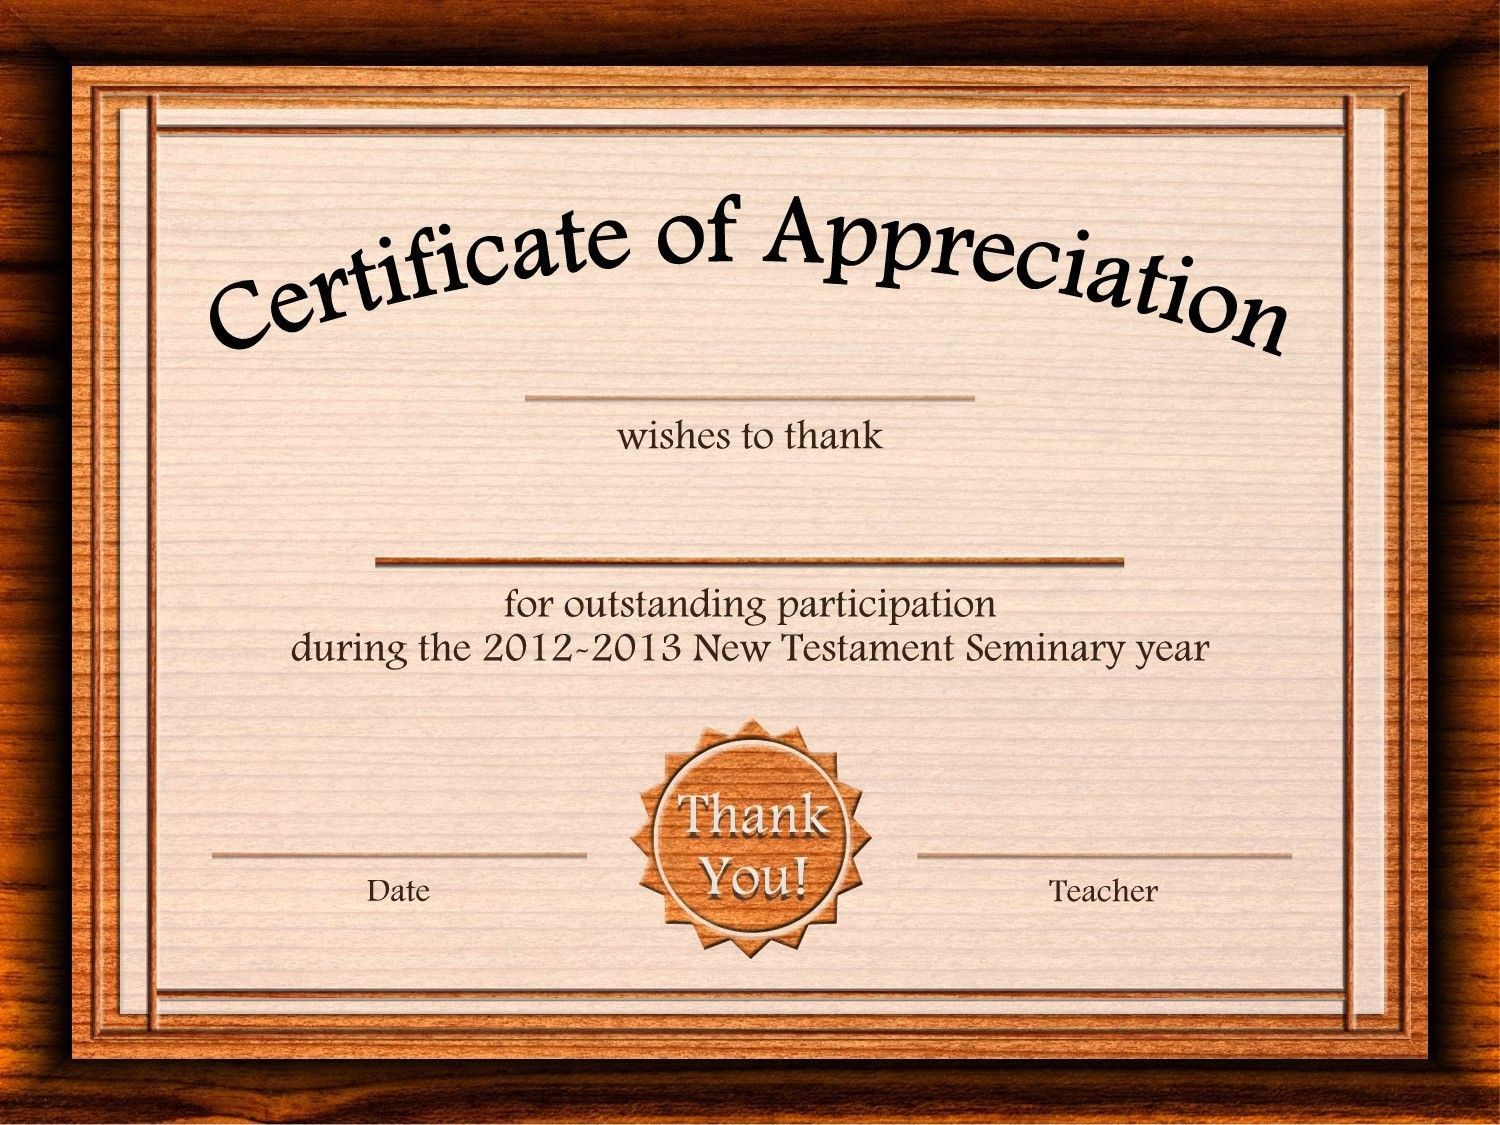 002 Outstanding Free Certificate Template Word Download Highest Quality  Of Appreciation Doc Award BorderFull